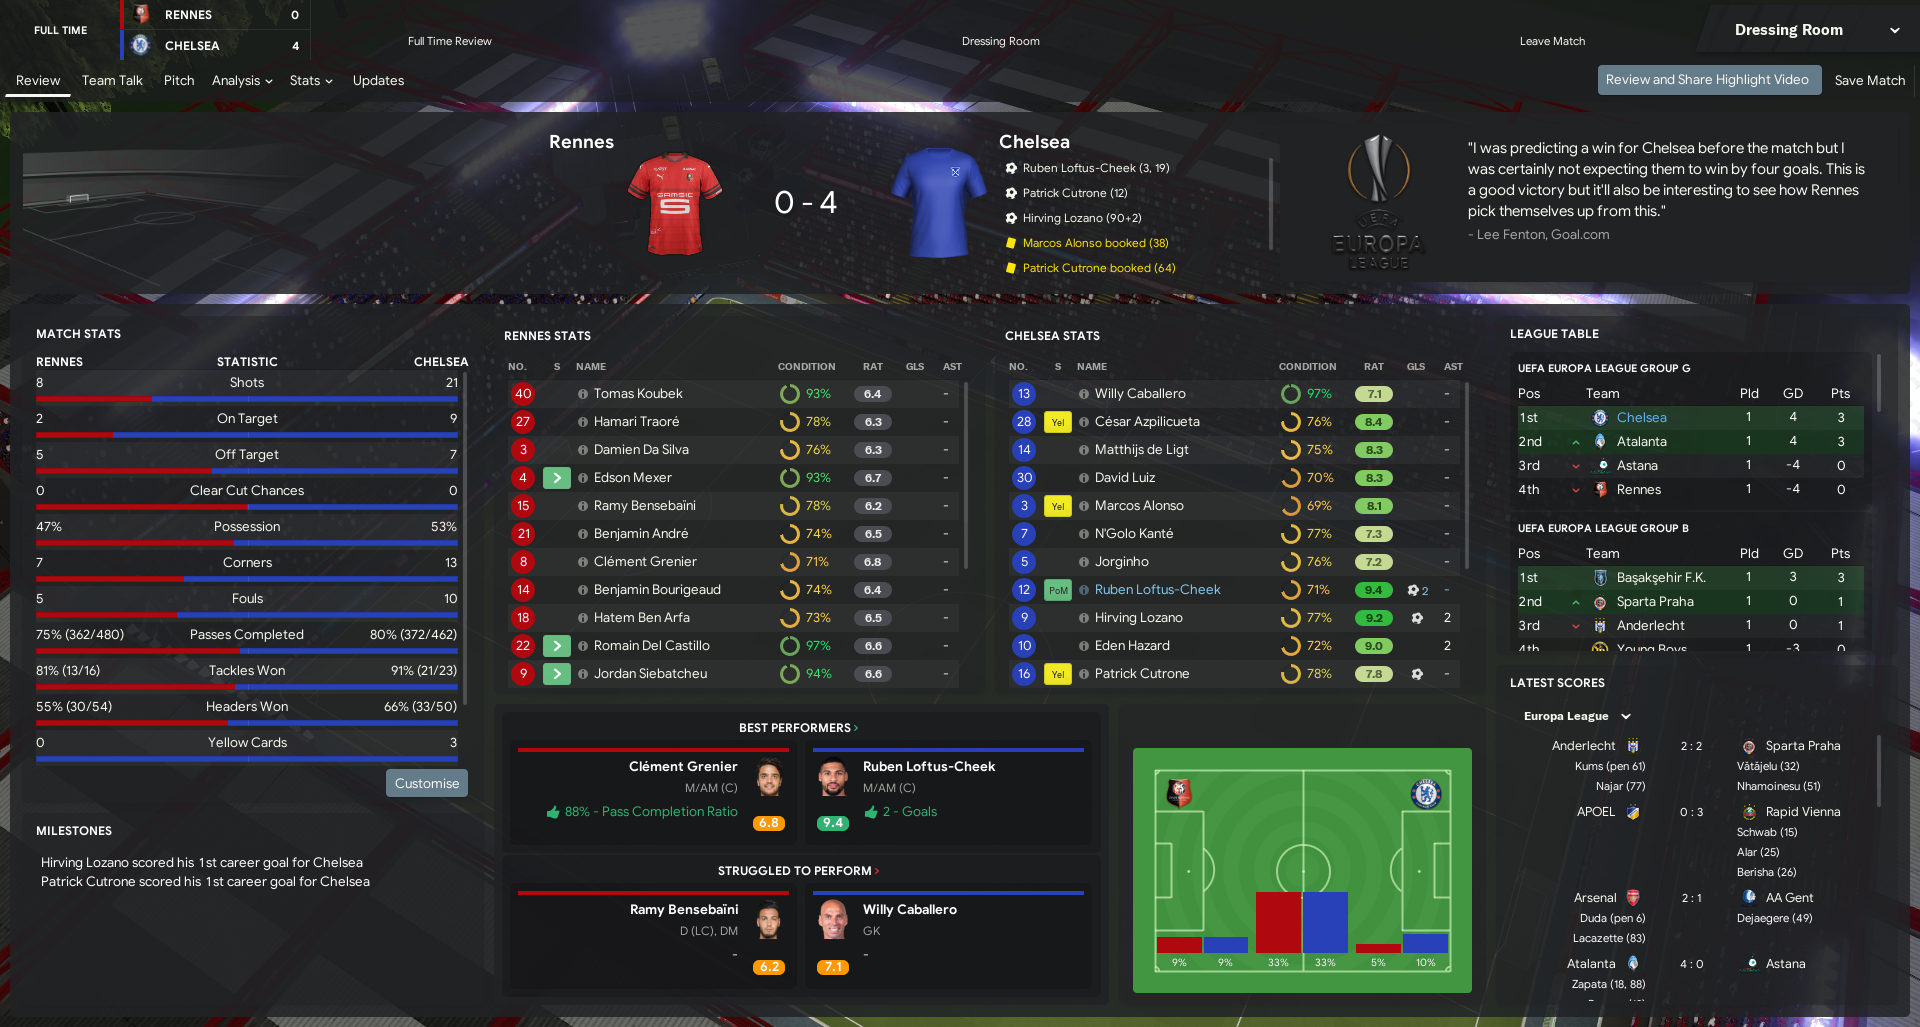 https://i.ibb.co/rb8hR74/Rennes-v-Chelsea-Match-Review-3.png